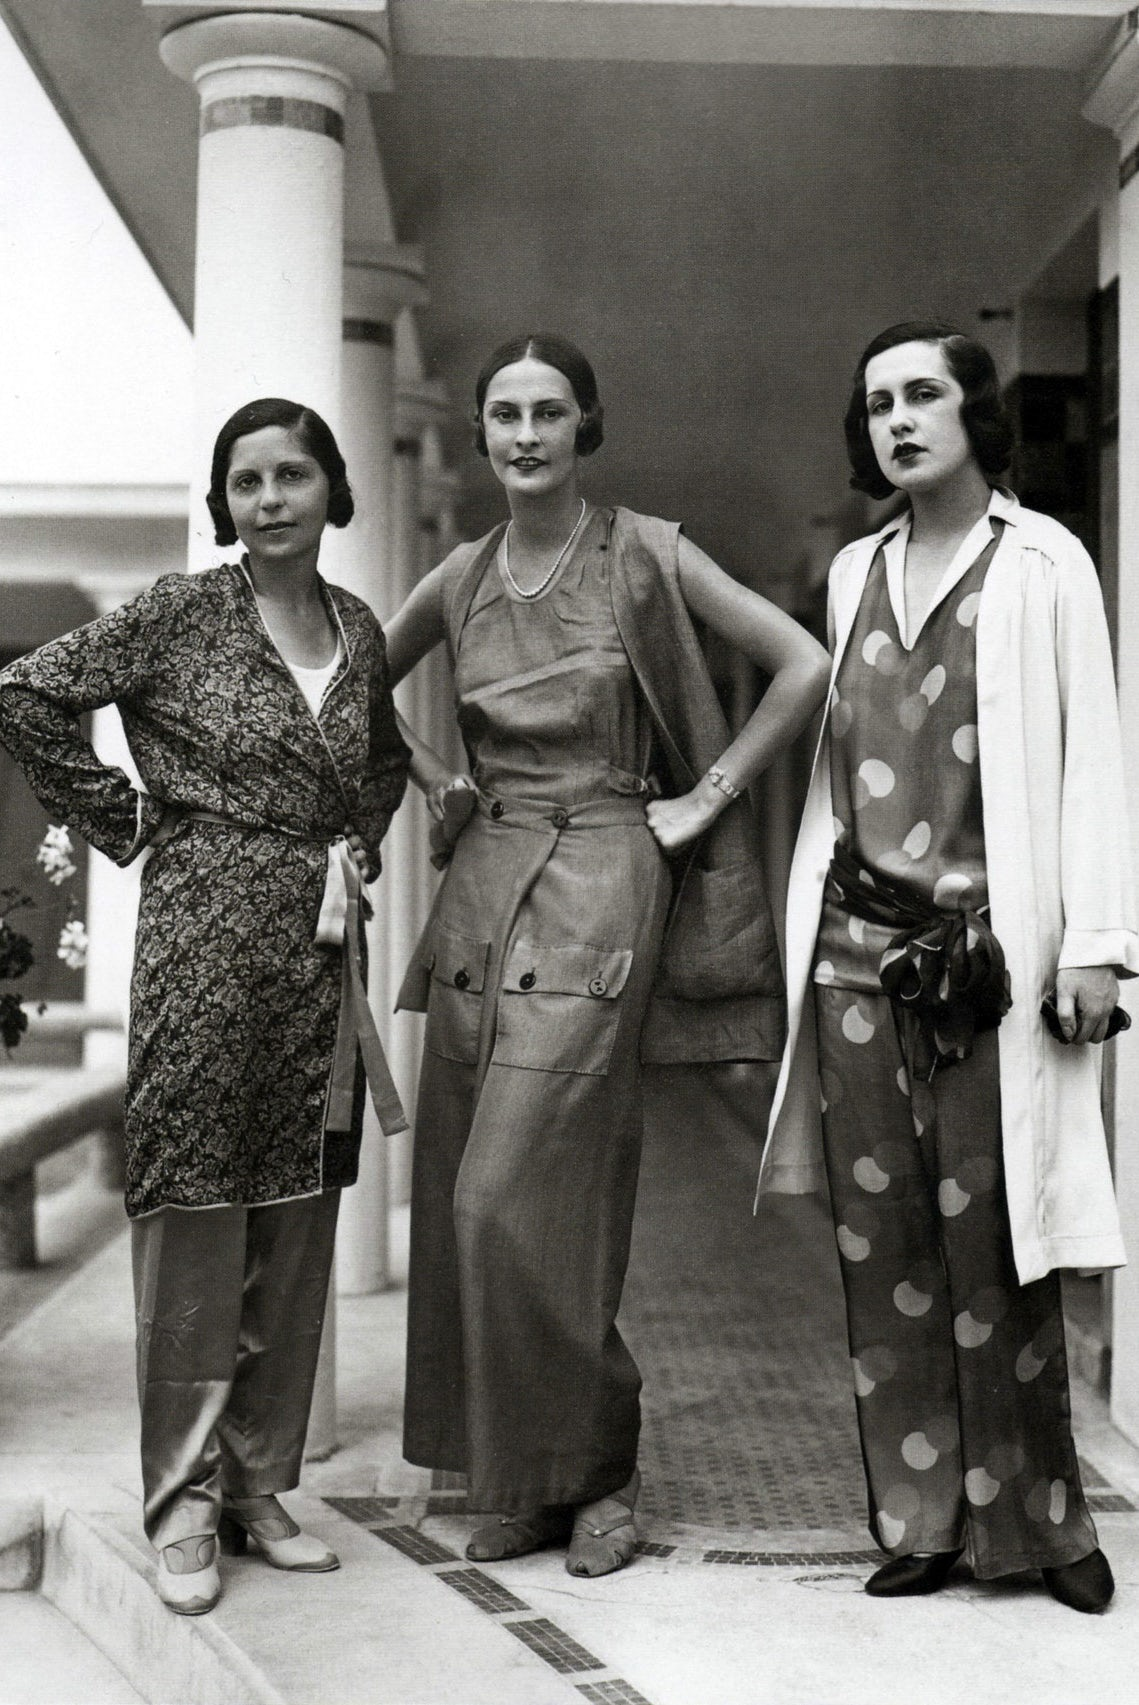 Schiaparelli designs (1929) | Source: Flickr/Laura Loveday